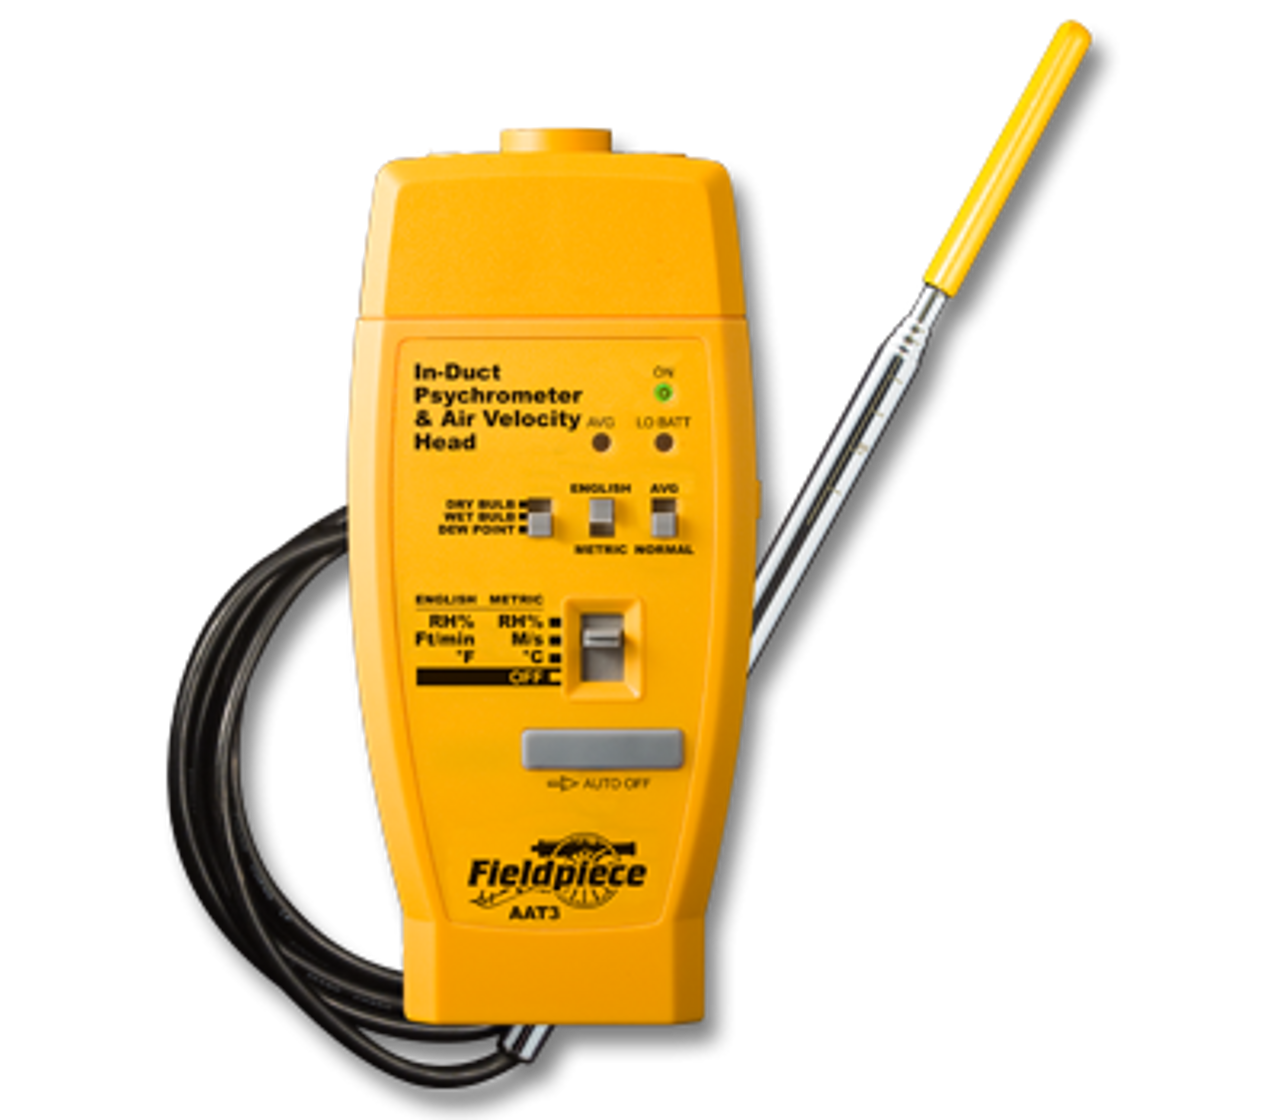 AAT3 Hot wire Anemometer & Psychrometer Accessory Head